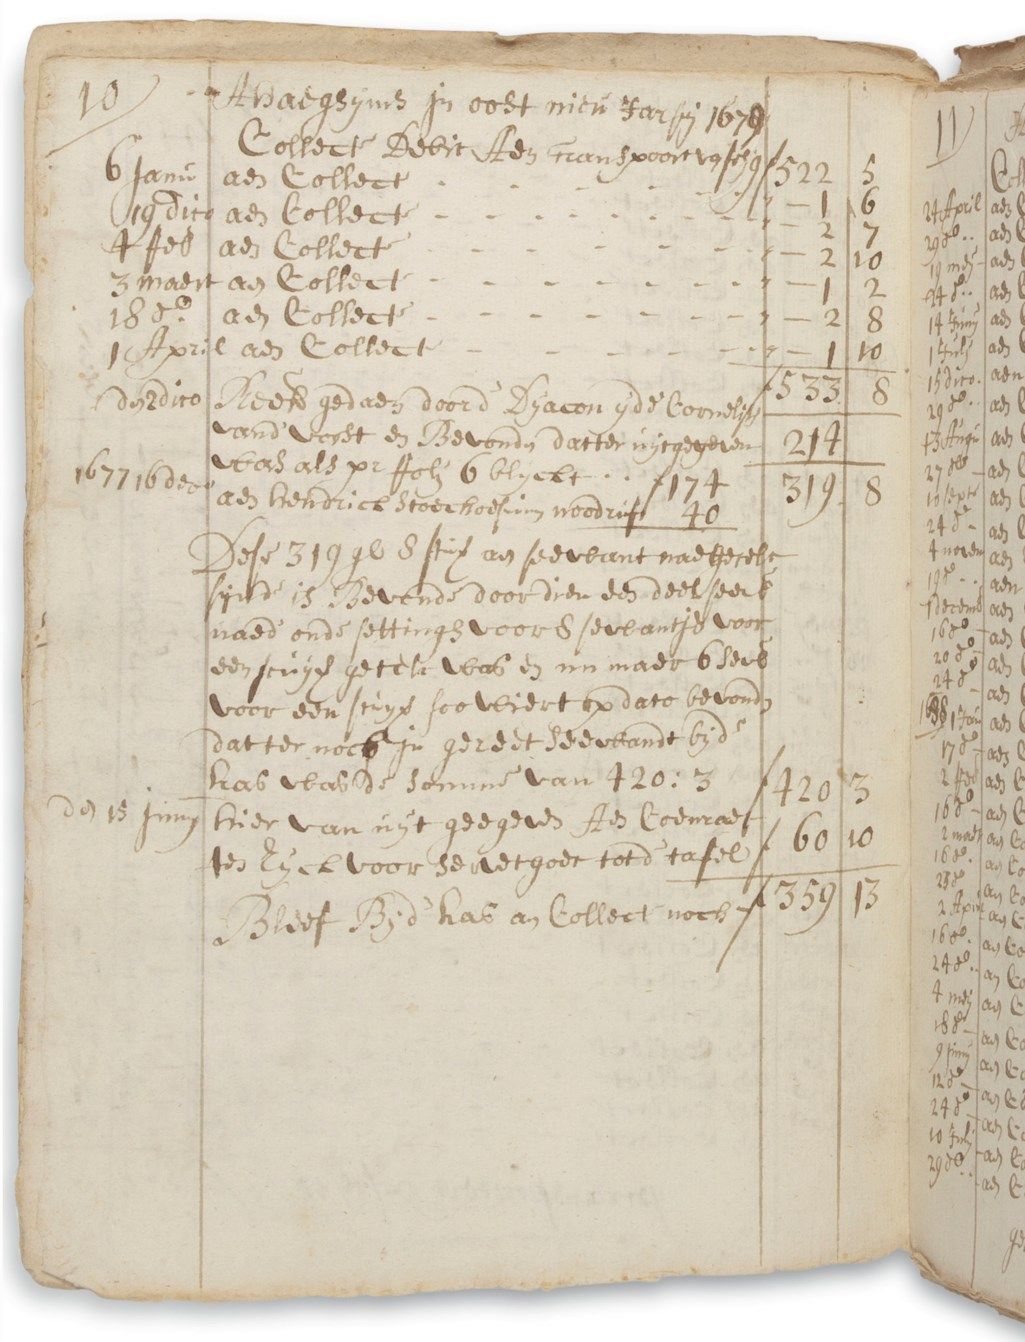 BERGEN, NEW JERSEY DUTCH REFORMED CHURCH. Manuscript accounts, Bergen, N.J., 1668 to 1703 and 1686 to 1734.